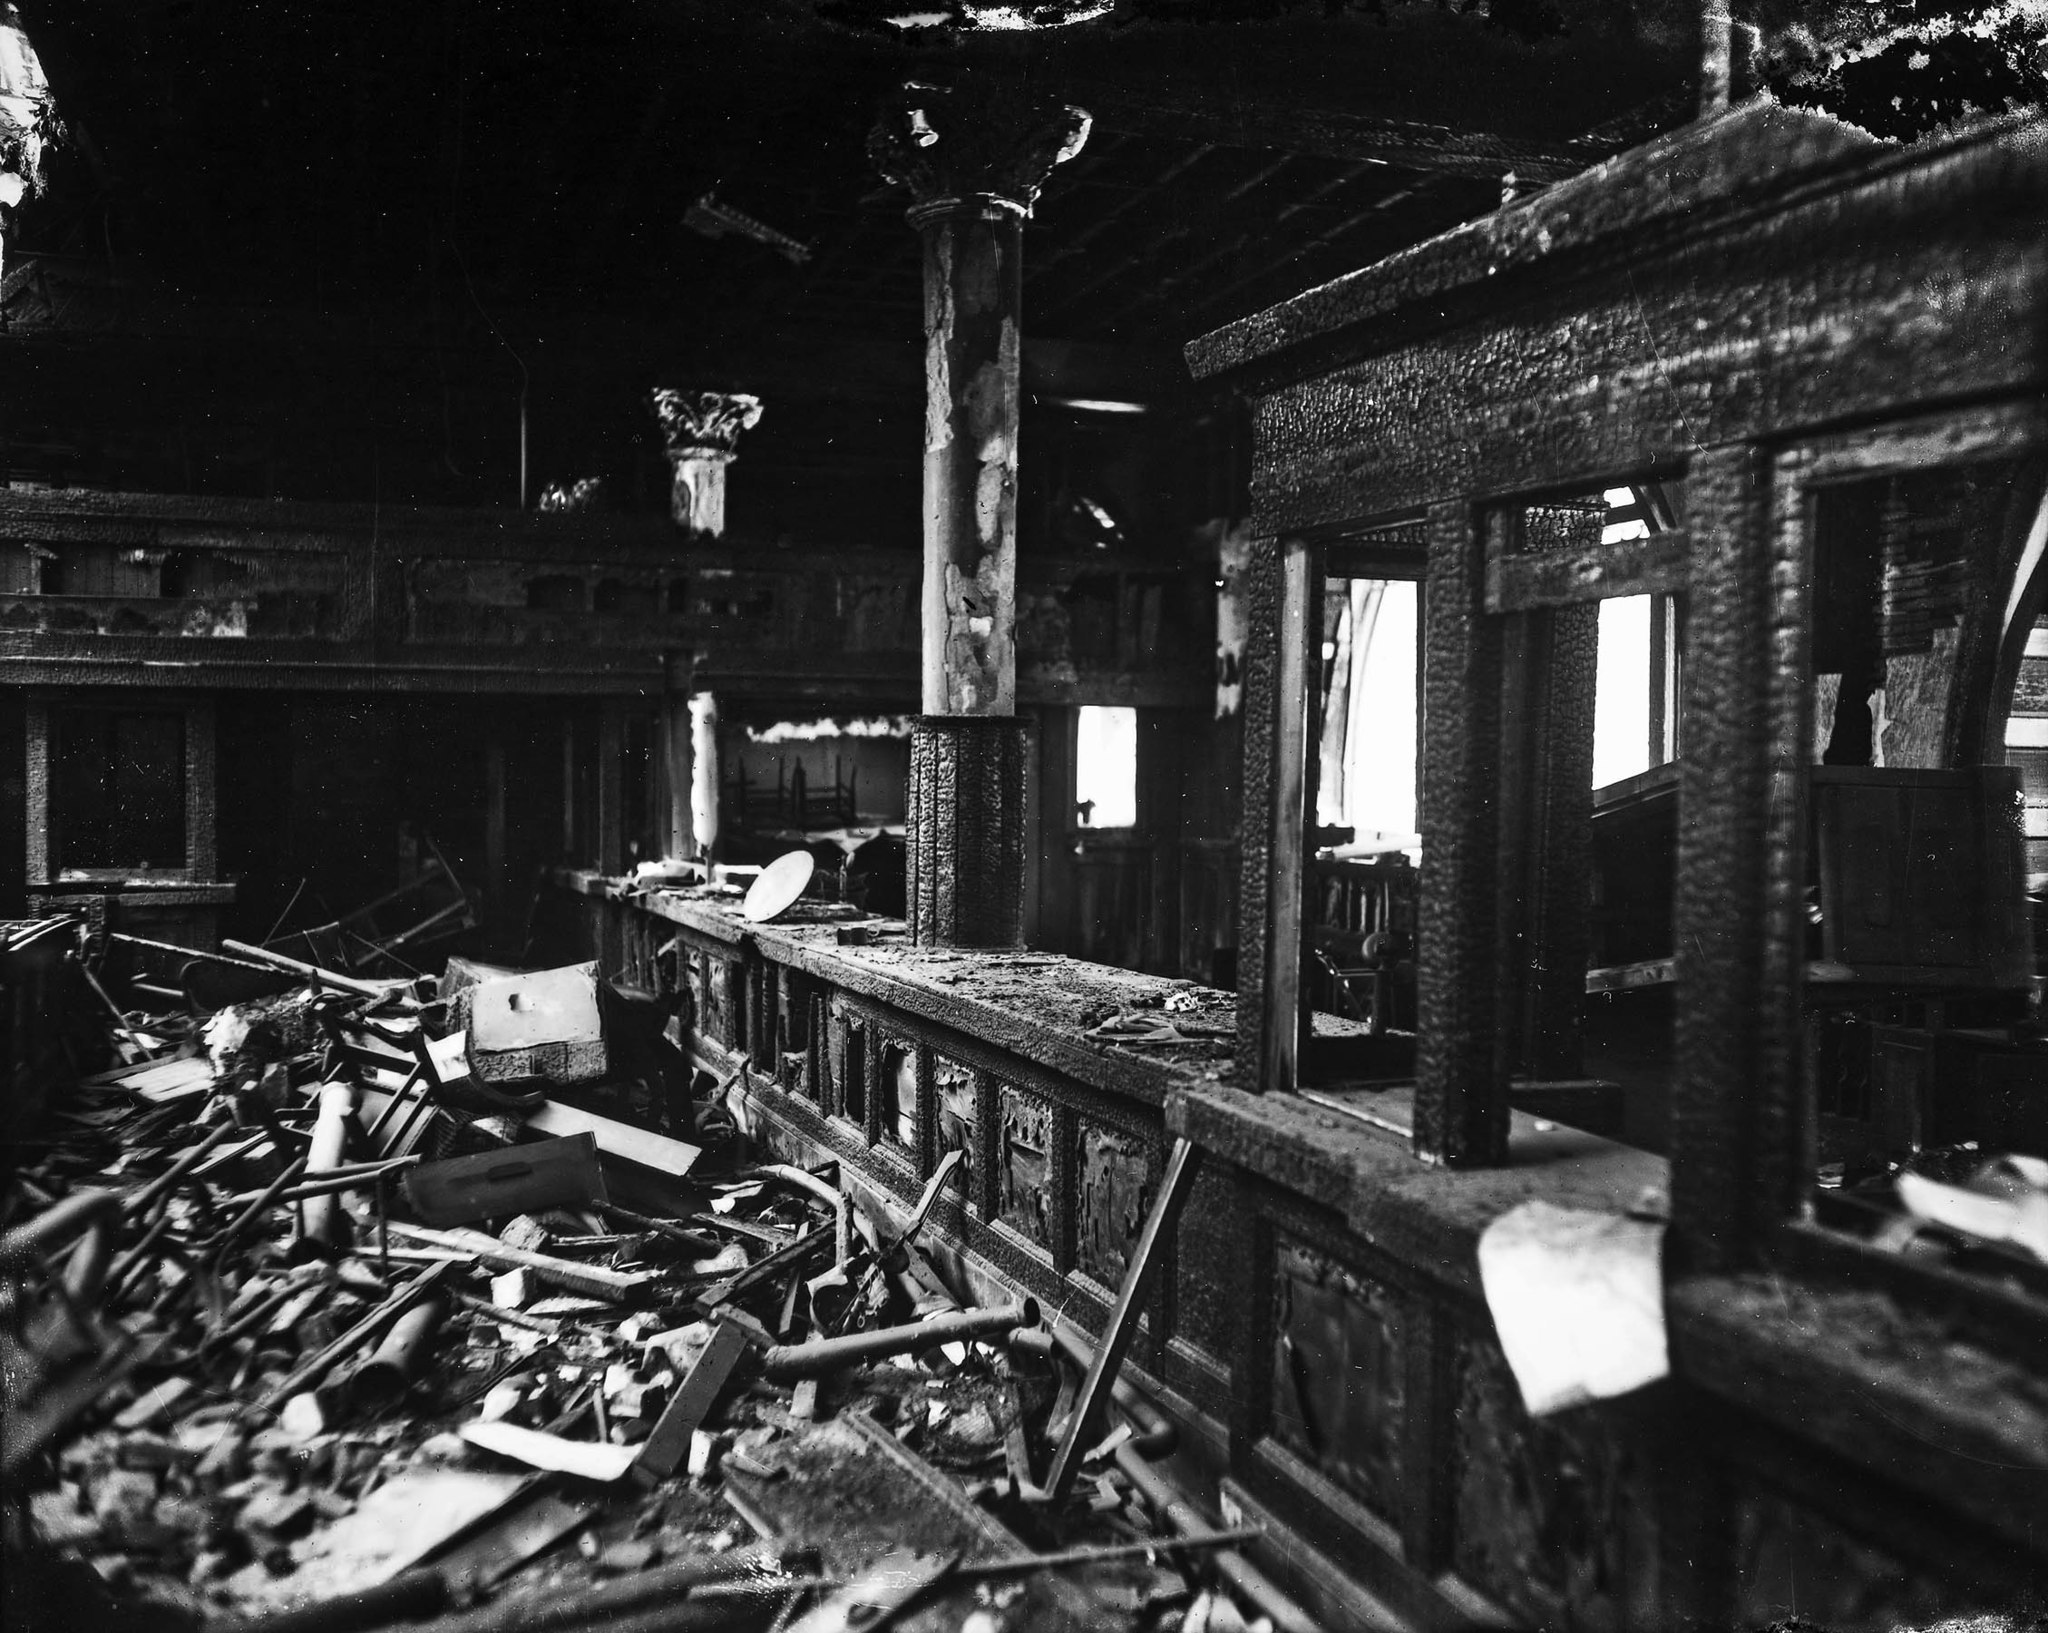 Oct. 1910: The burned remains of the main business counter, which used wood from dozens of sources,